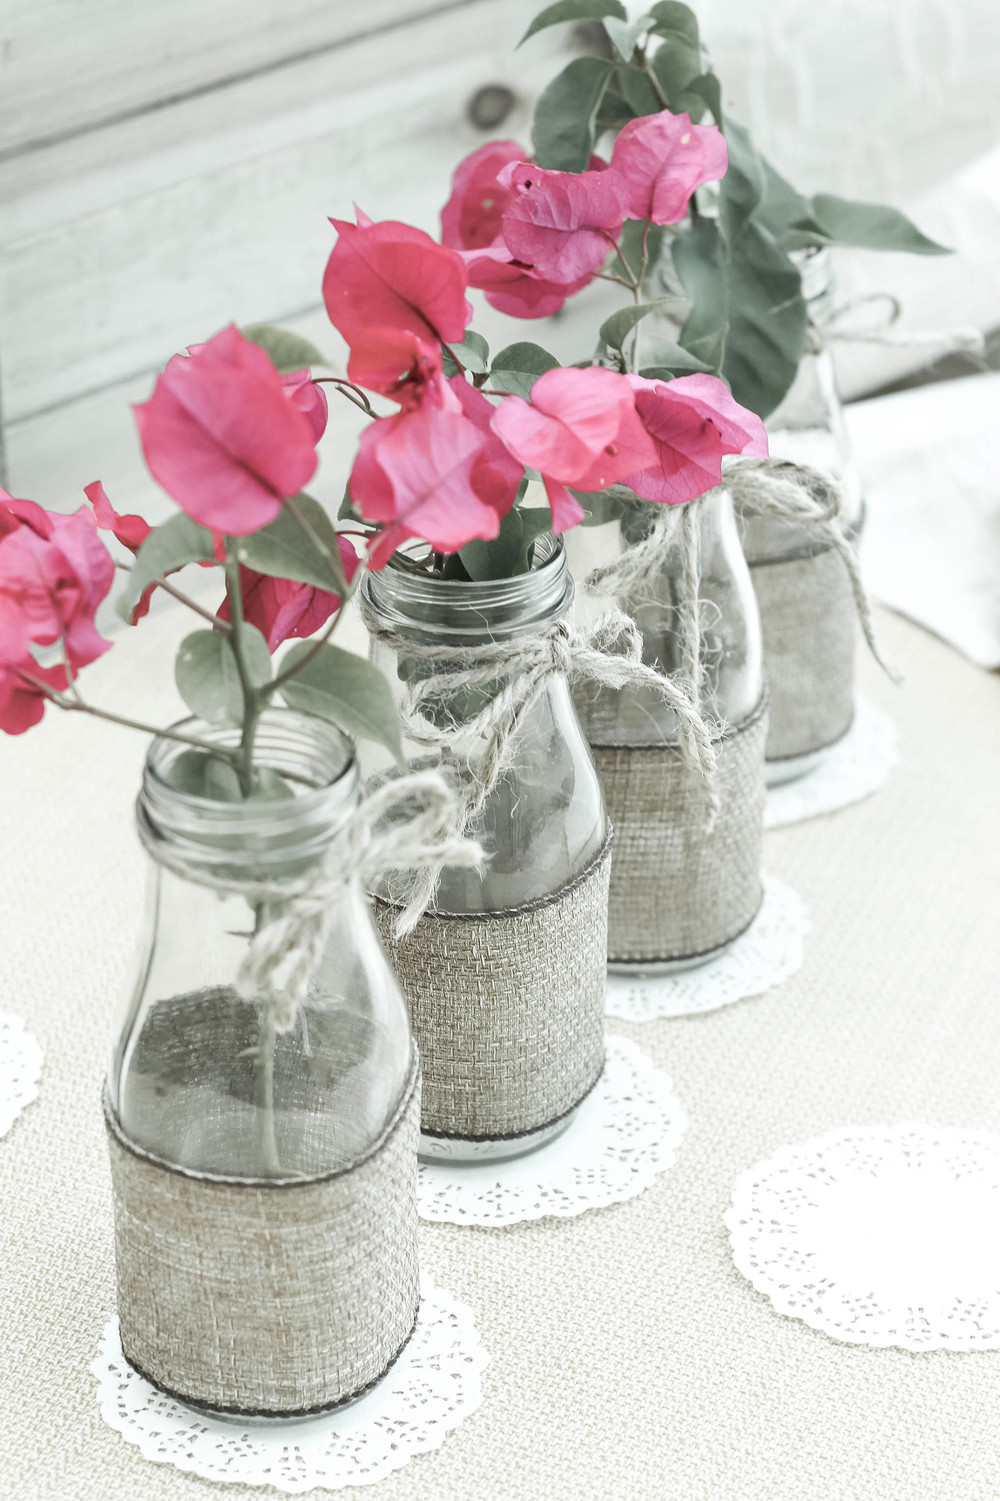 Blog the party preppers diy recycle glass bottles into flower vases reviewsmspy